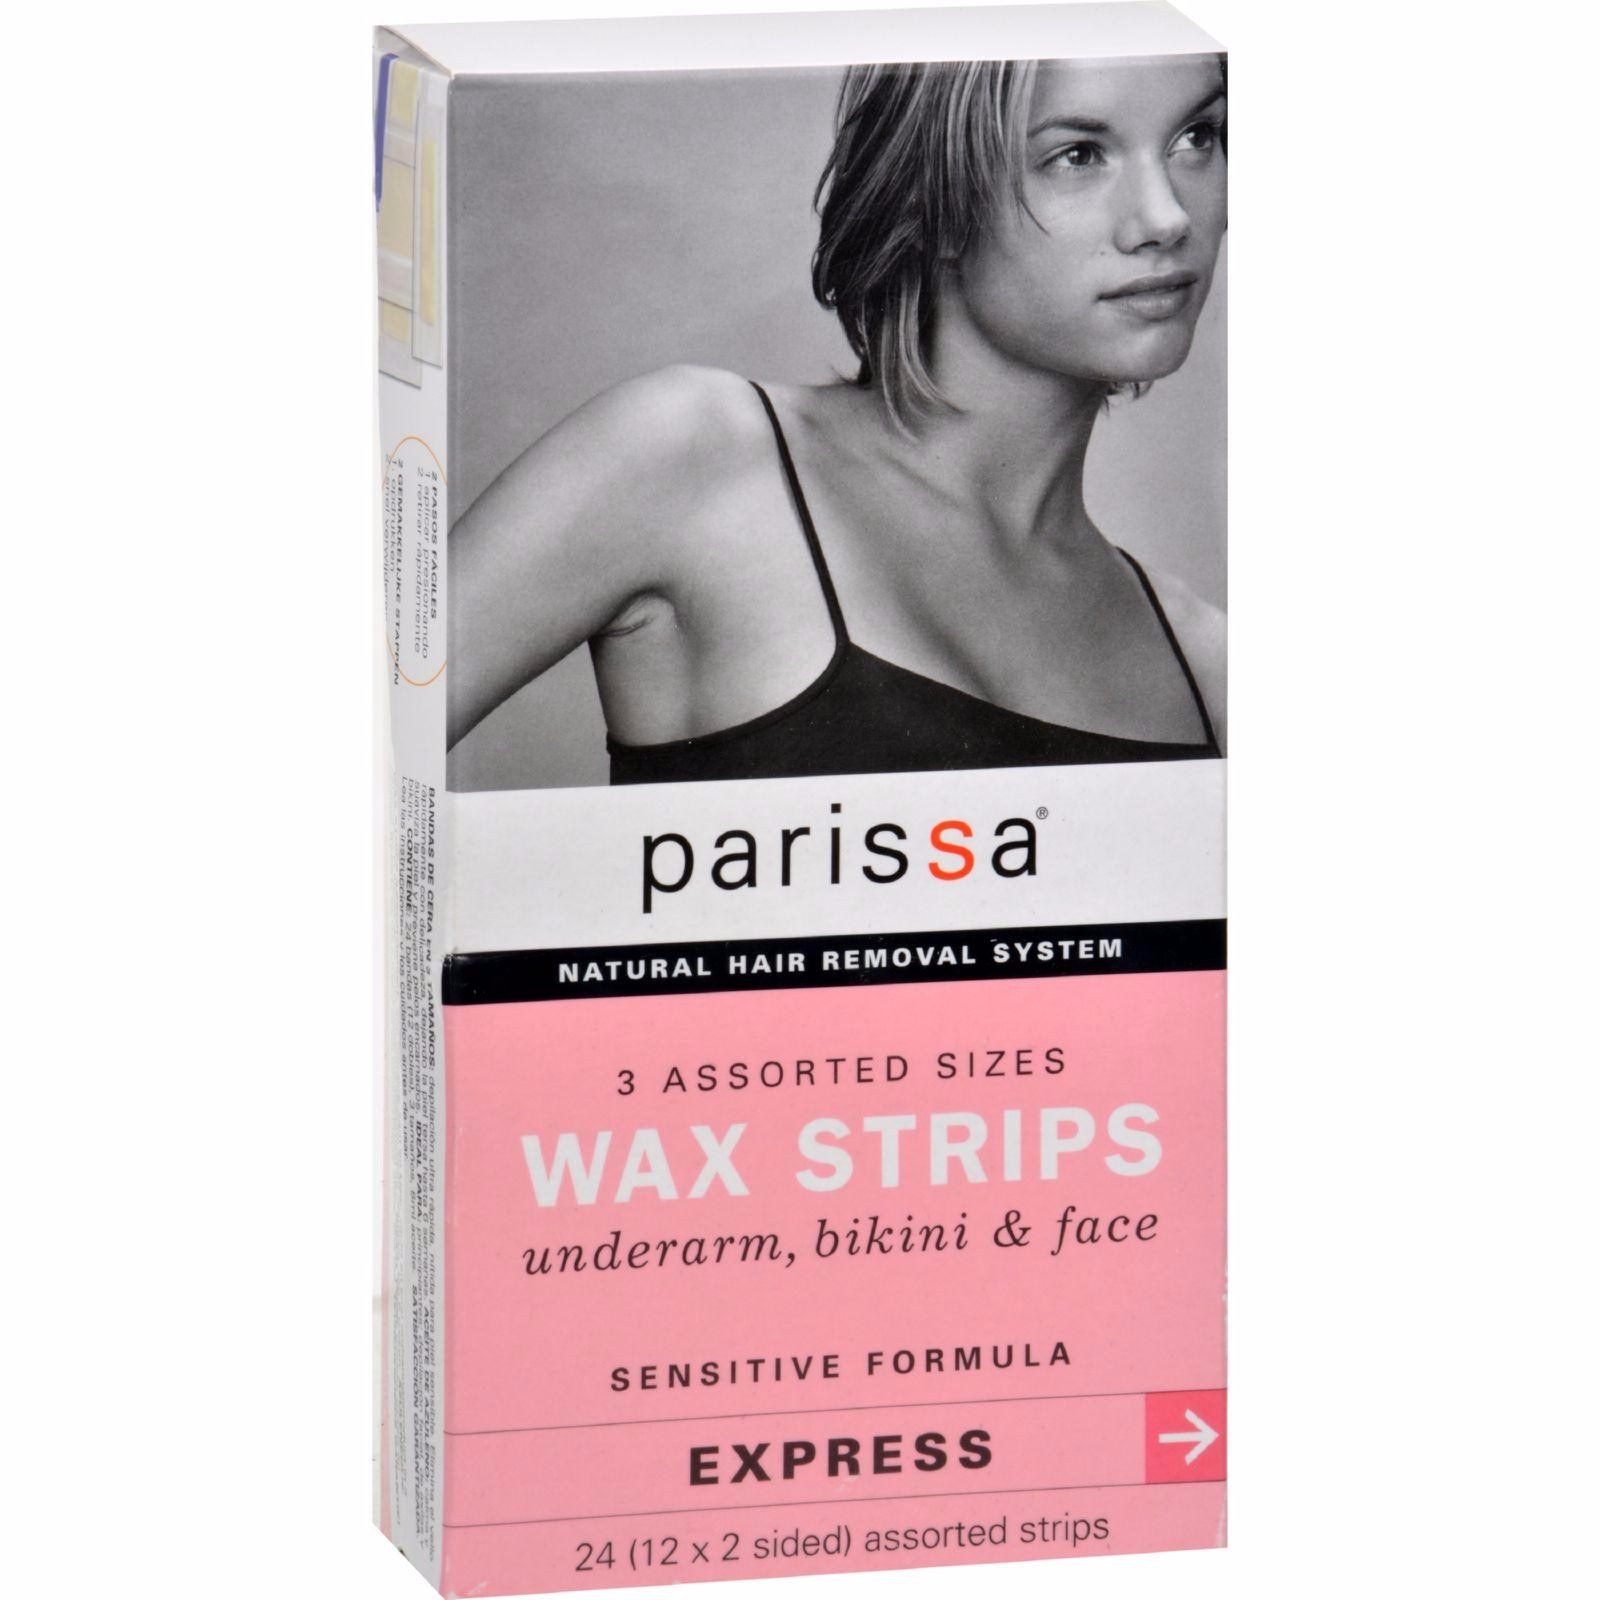 Parissa Wax Strips Sensitive 3 Assorted Sizes - 24 Strips - image 1 of 1